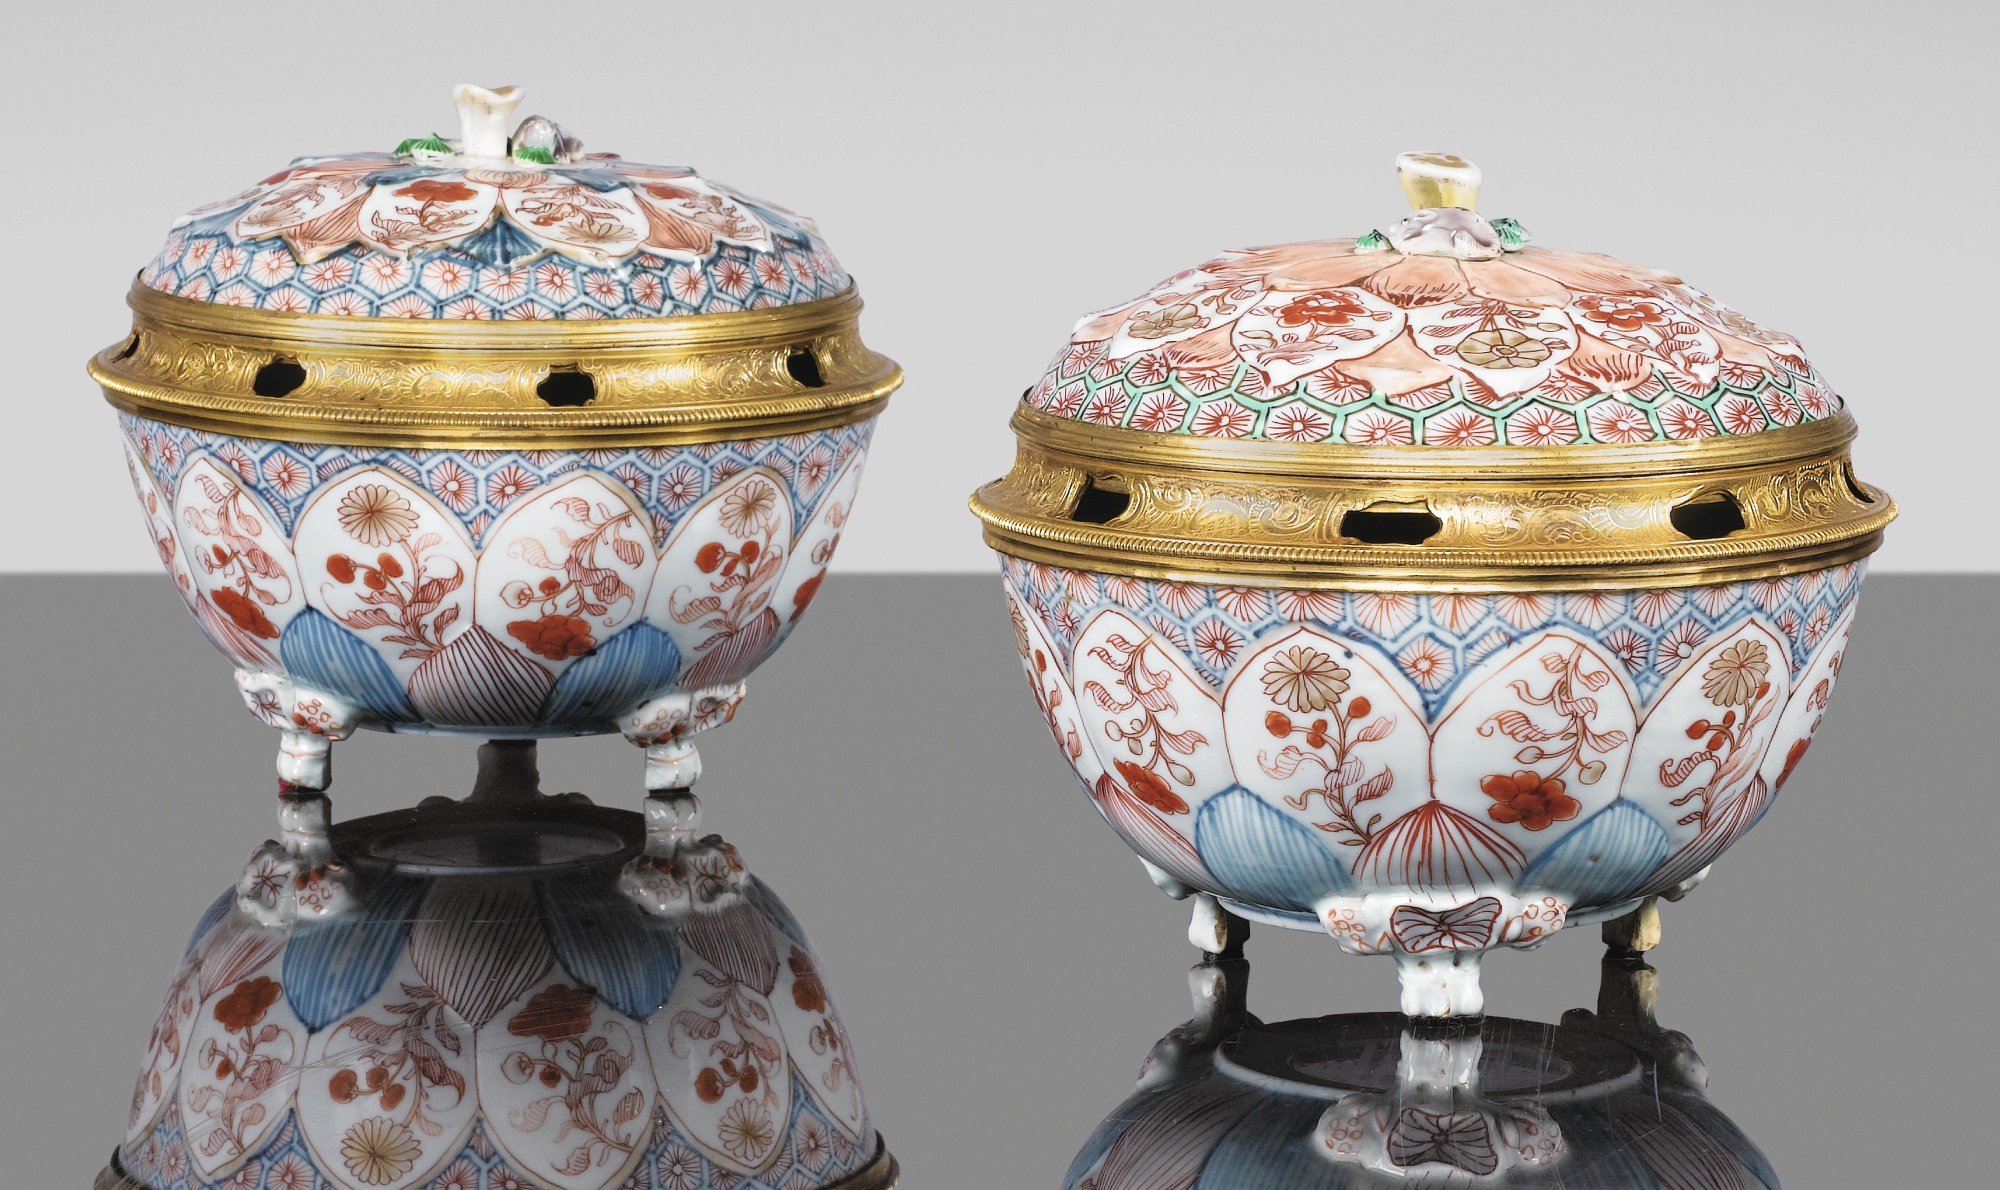 Two Imari Chinese porcelain pots-pourris with engraved gilt-bronze mounts, circa 1720. Sotheby's.